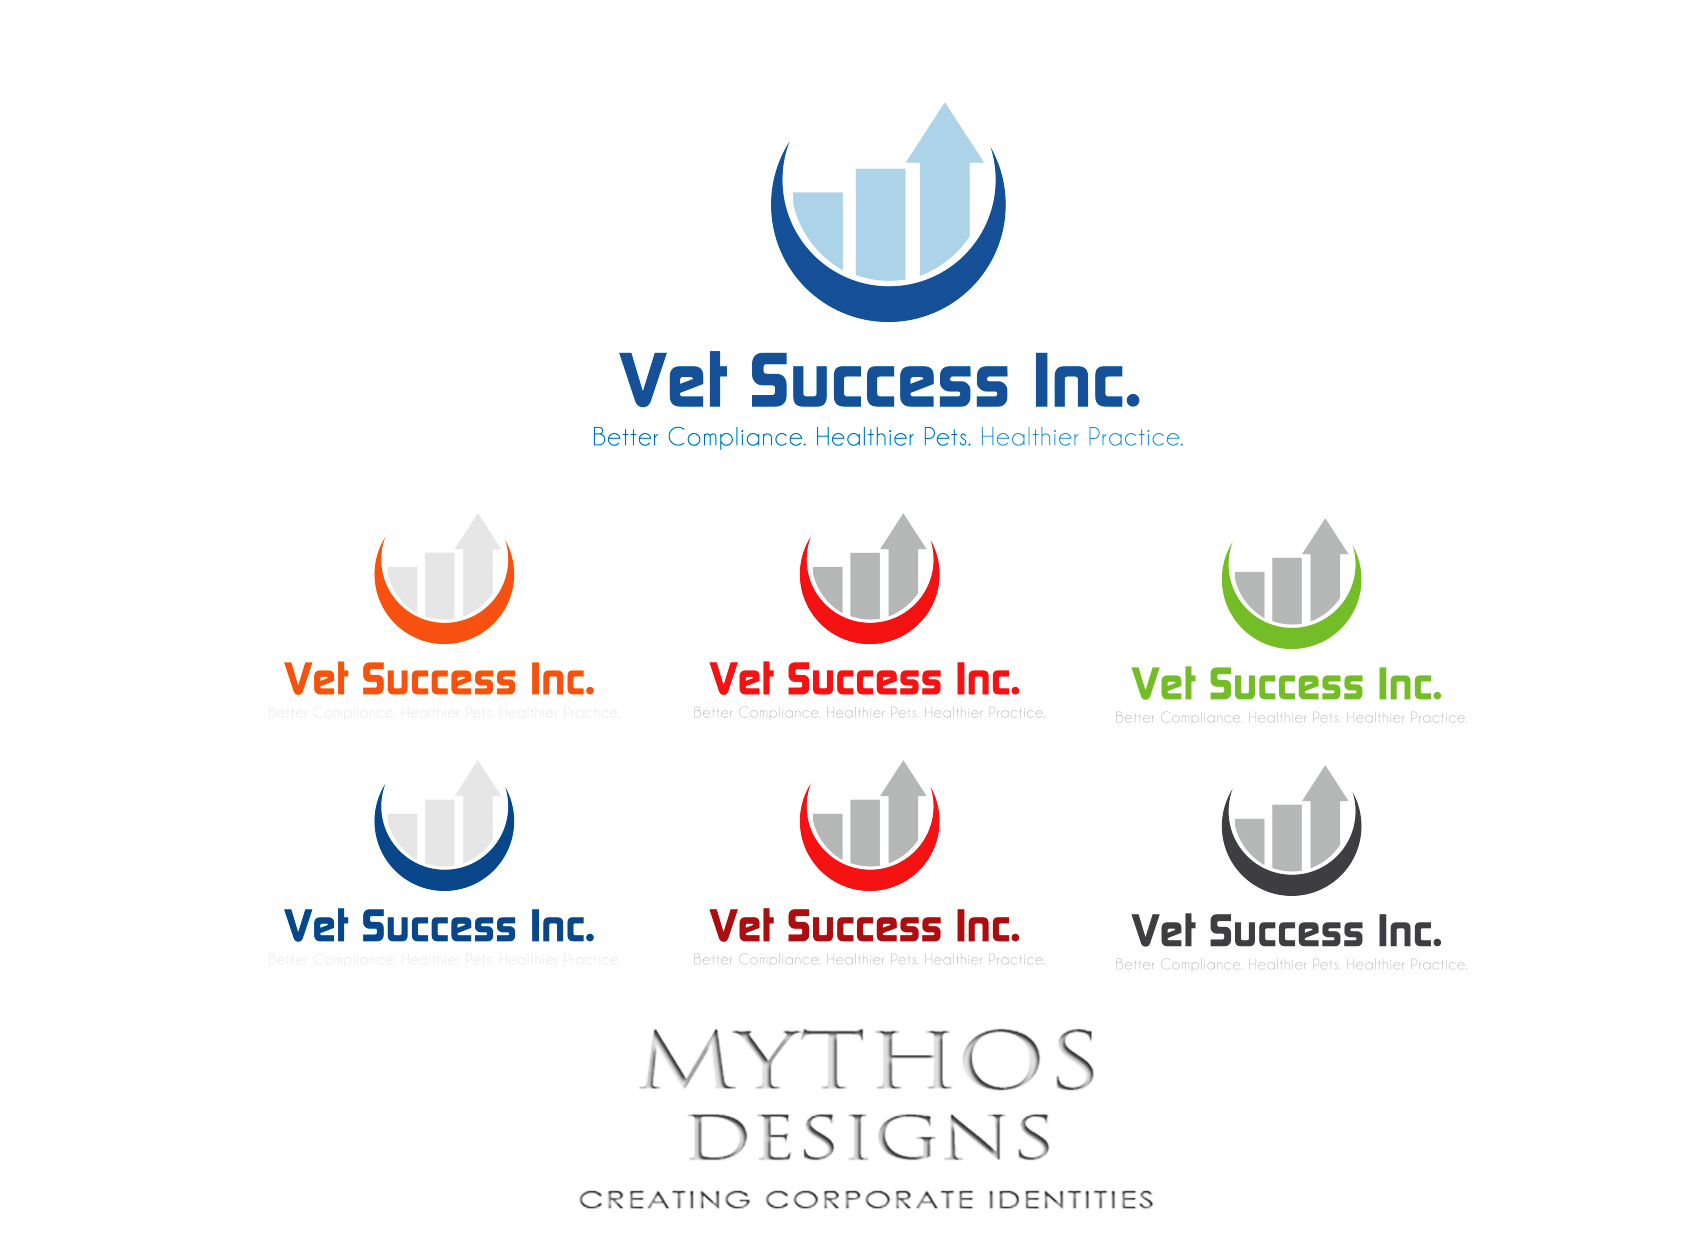 Logo Design by Mythos Designs - Entry No. 107 in the Logo Design Contest Imaginative Logo Design for Vet Success Inc..